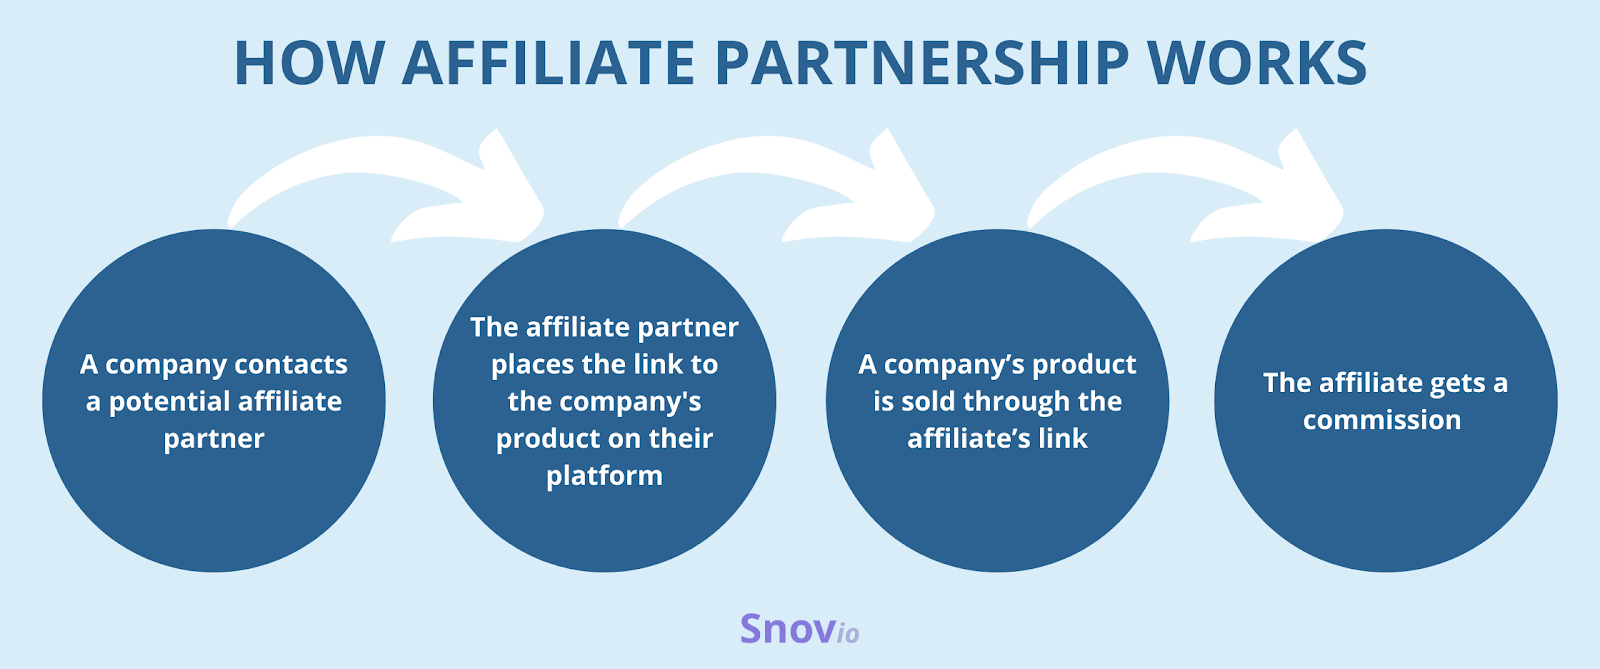 How affiliate partnership works